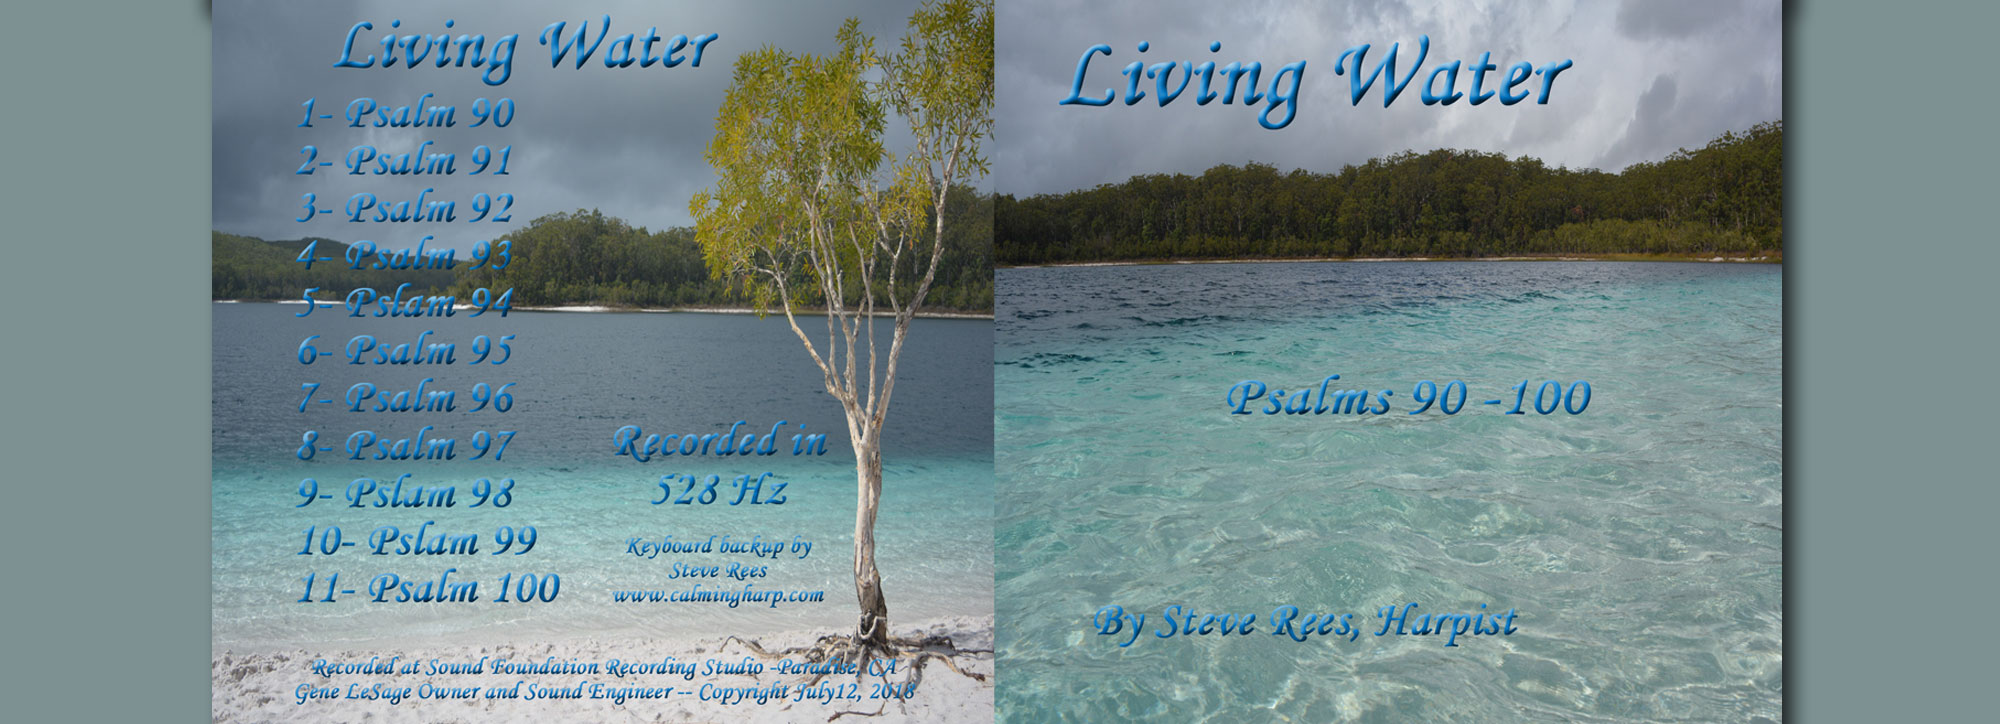 New CD Available U2013 Living Water